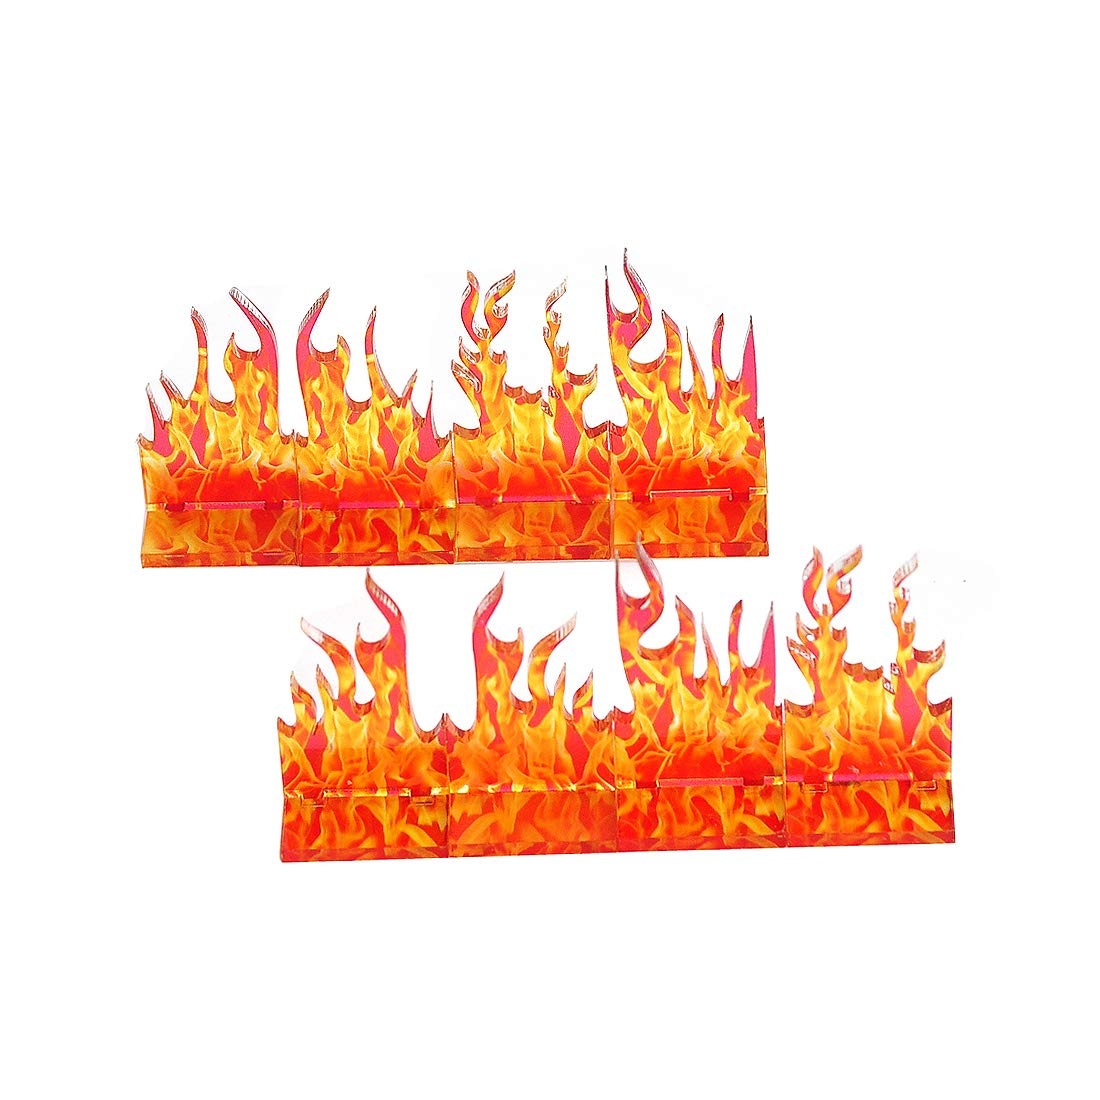 D&D Wall of Fire Miniature (Set of 8) Spell Effects Flame Terrain for Dungeons and Dragons, Pathfinder and Other Tabletop RPG by CZYY